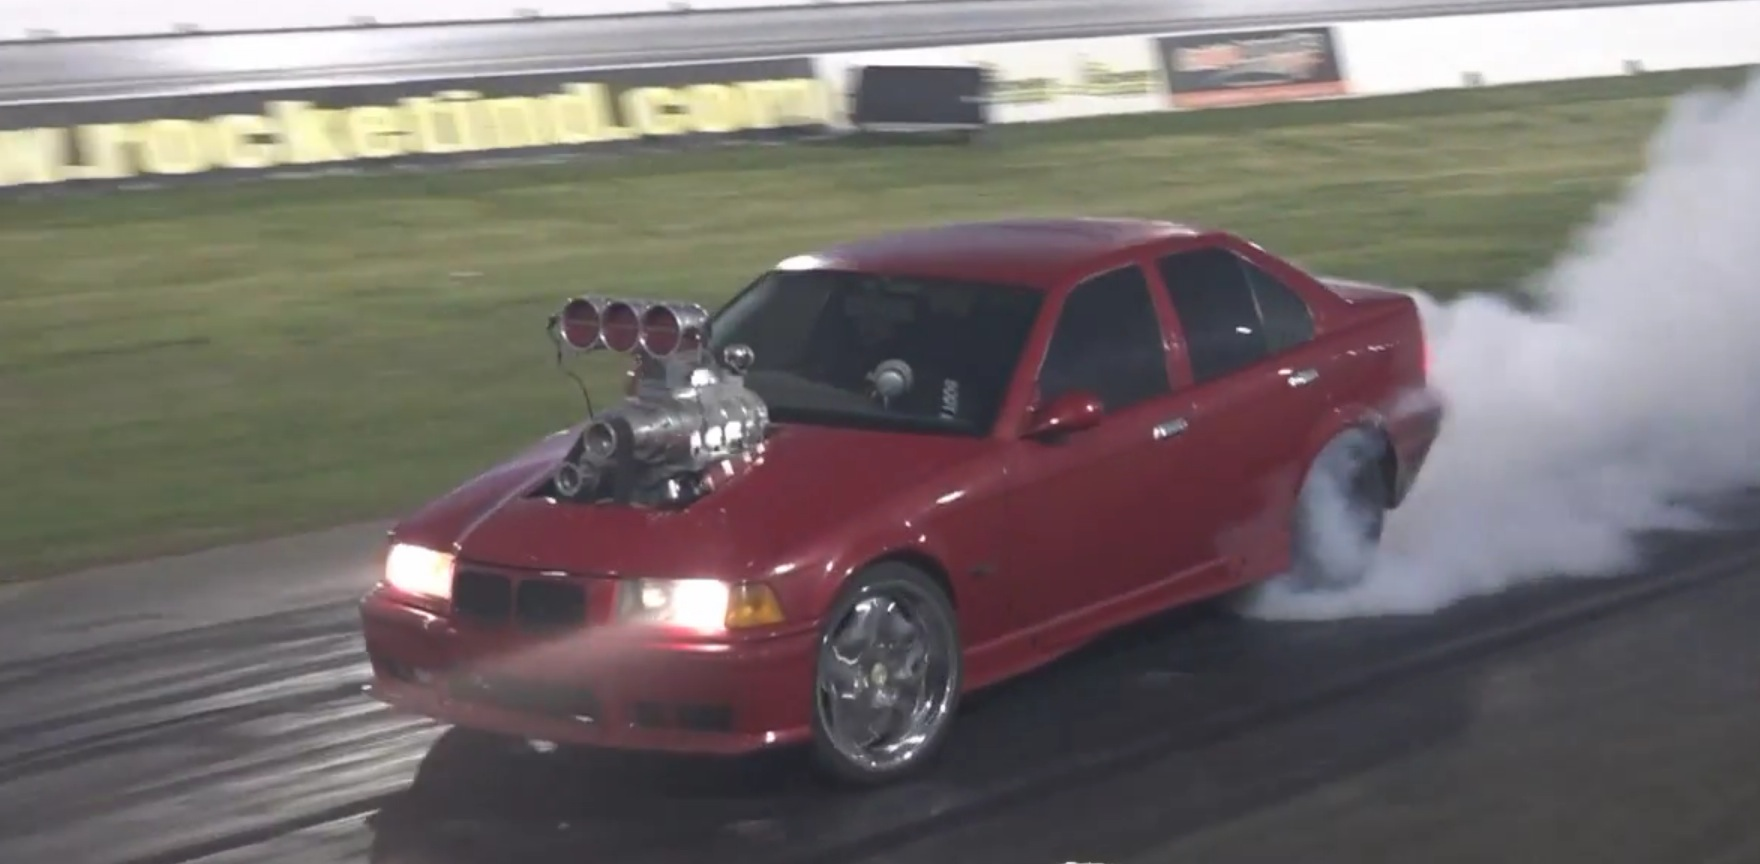 Bmw E36 3 Series Gets Monster Supercharged V8 Engine Swap